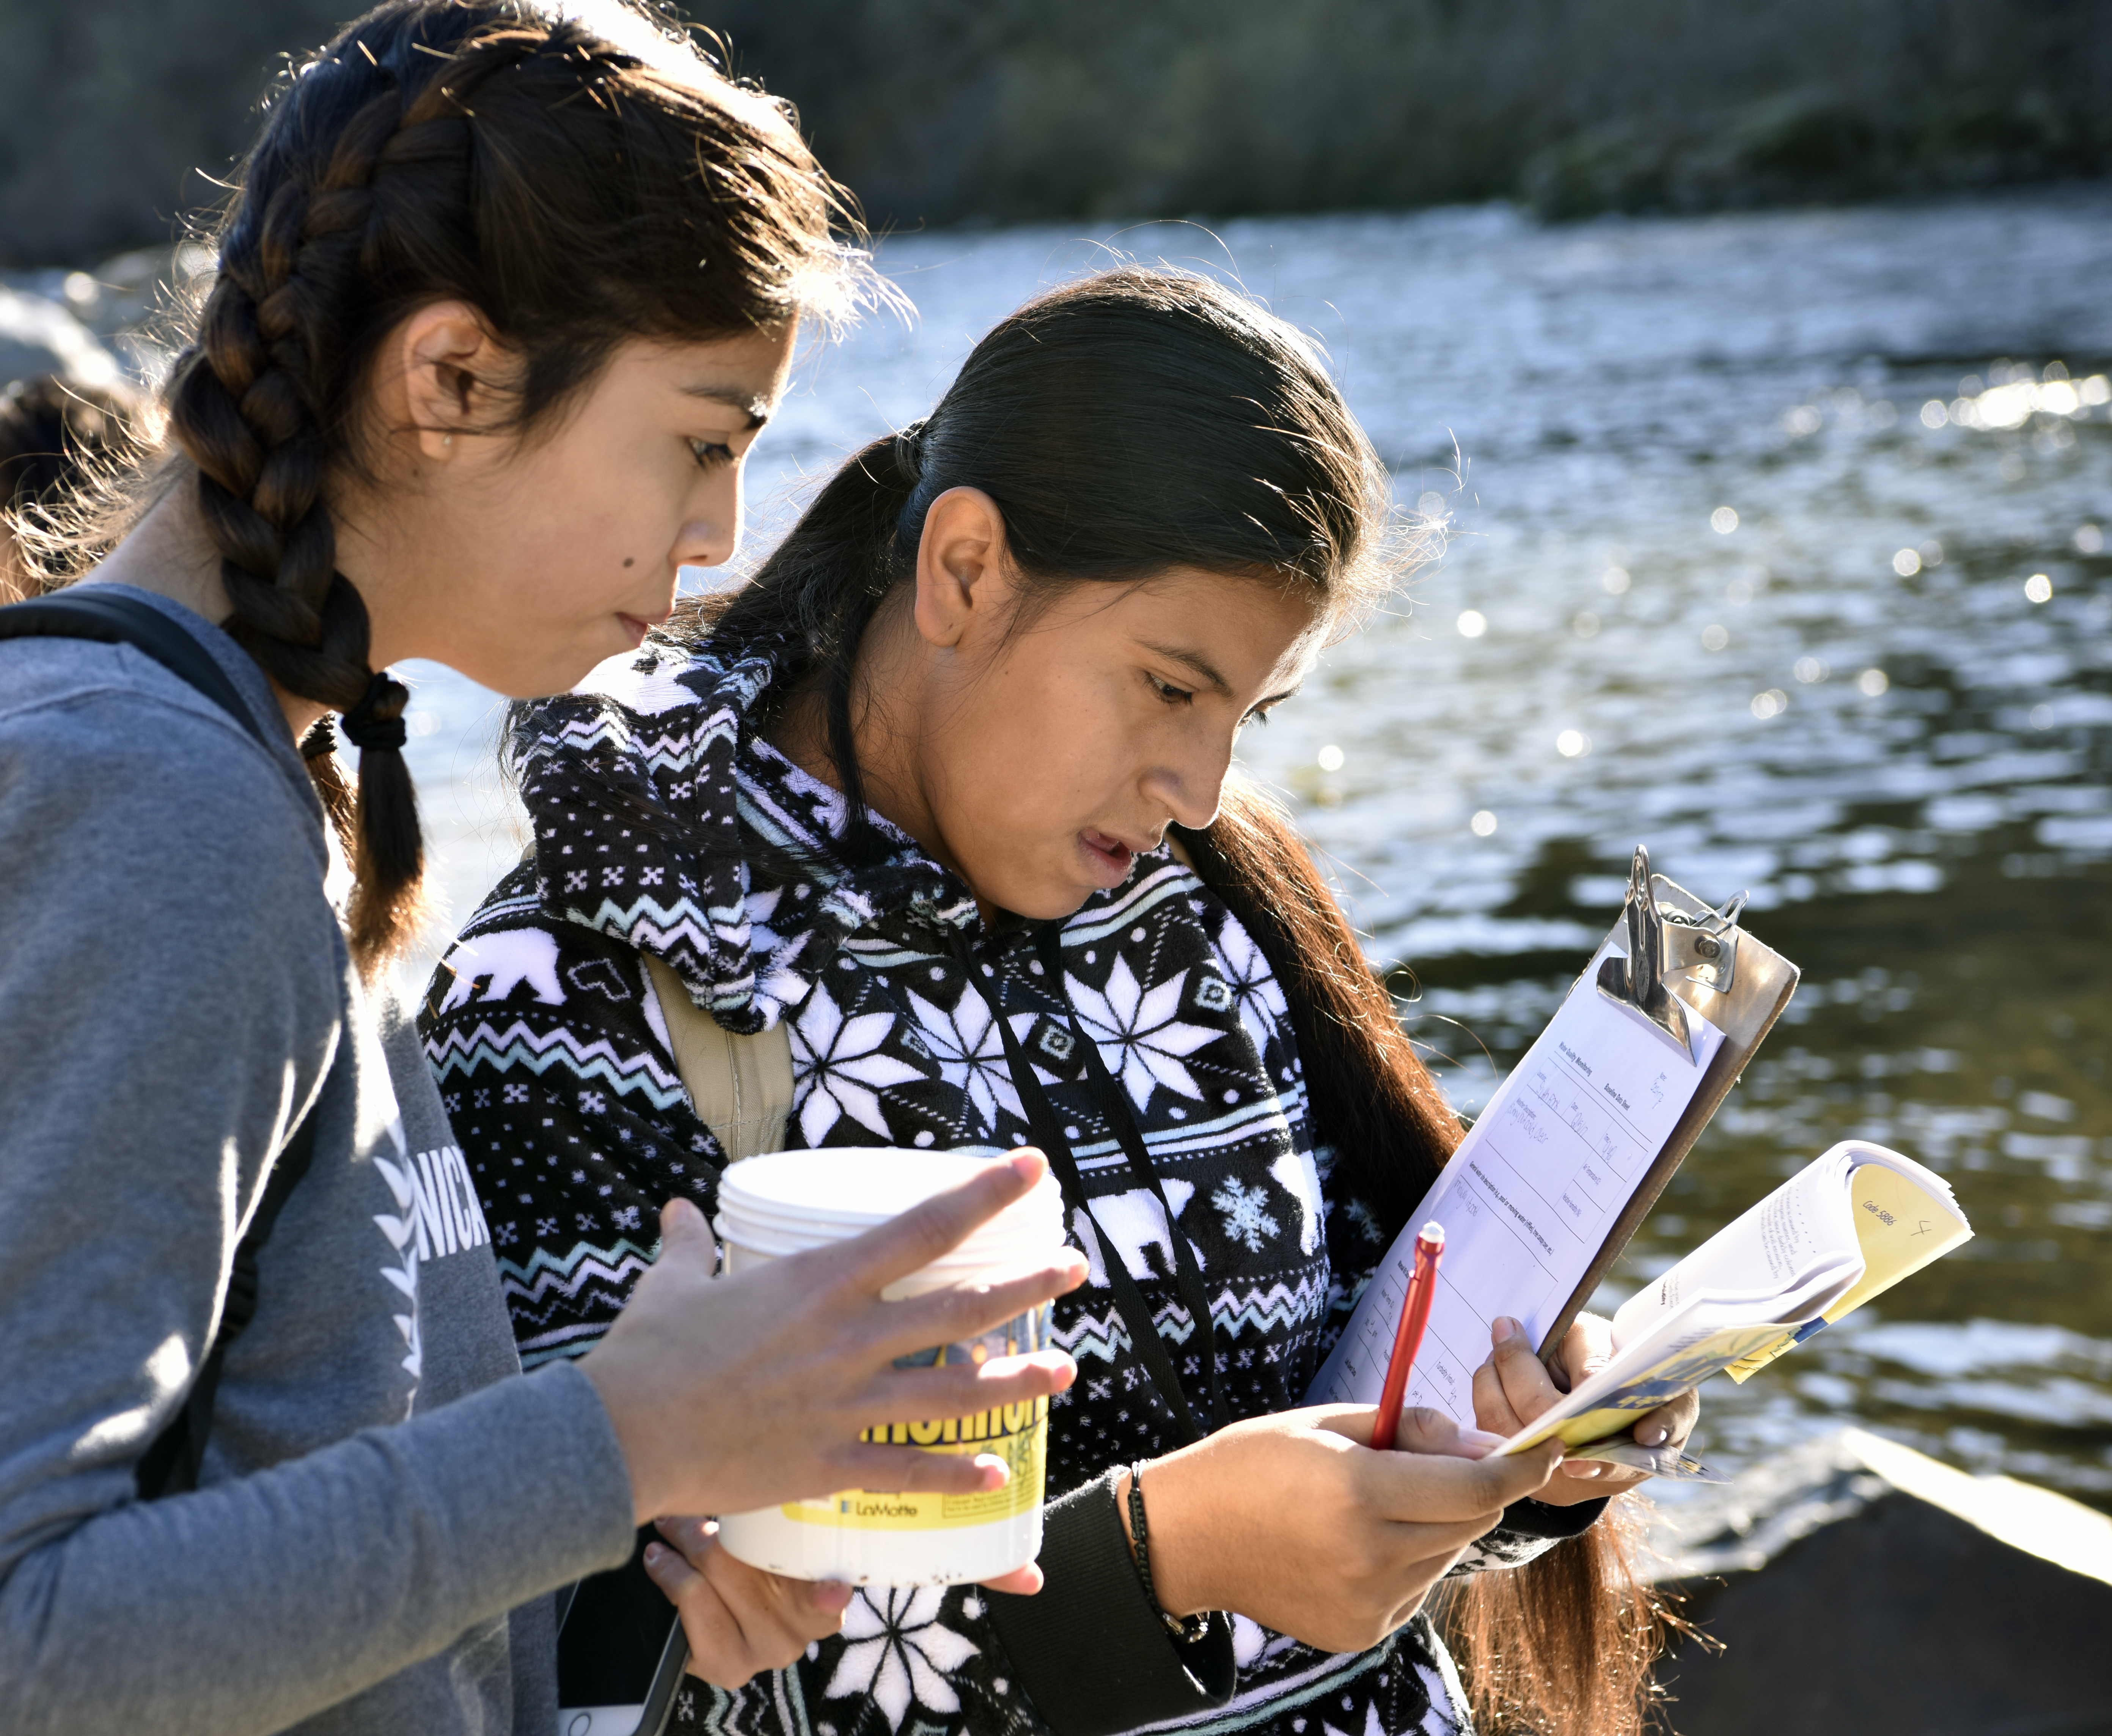 Union Mine High School students conduct water sampling at Greenwood Creek River Access on December 5, 2017